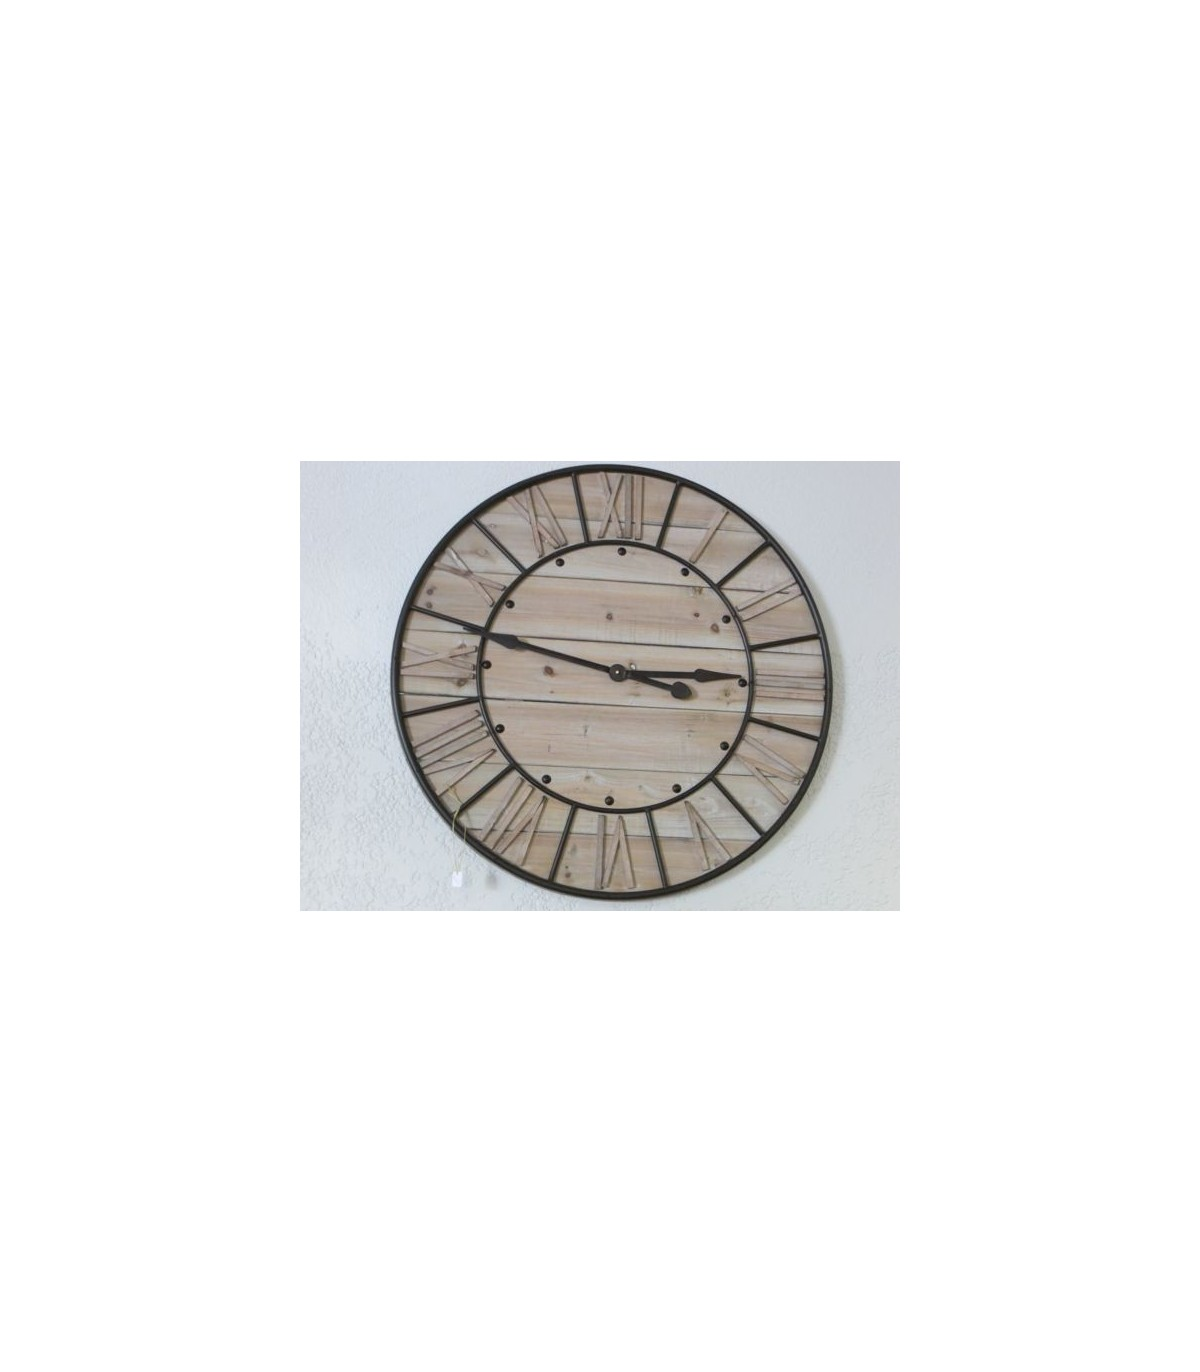 Horloge bois metal for Horloge bois metal